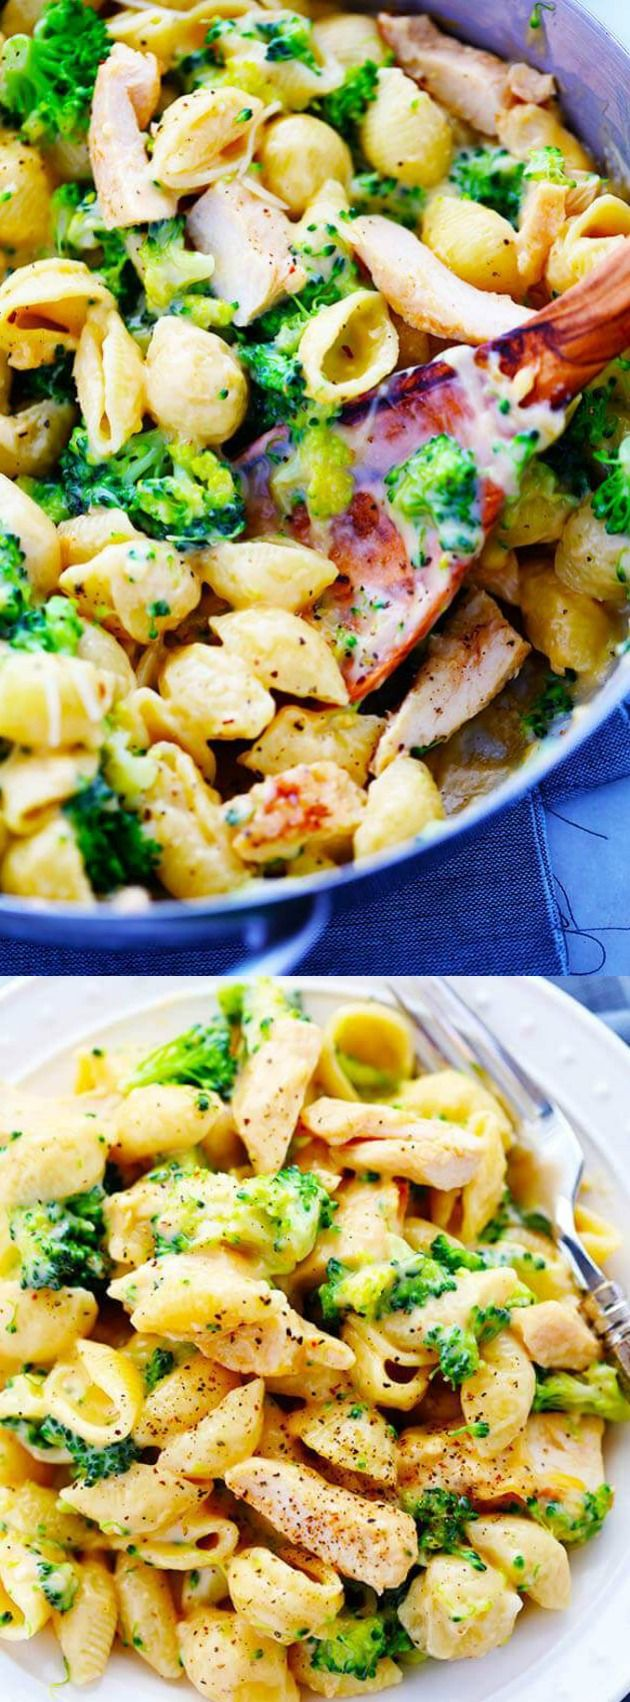 This Cheesy Chicken Broccoli Shells recipe from The Recipe Critic is SO much better than the boxed mac and cheese! You really can't go wrong with a deliciously cheesy sauce, chicken, broccoli and shells!